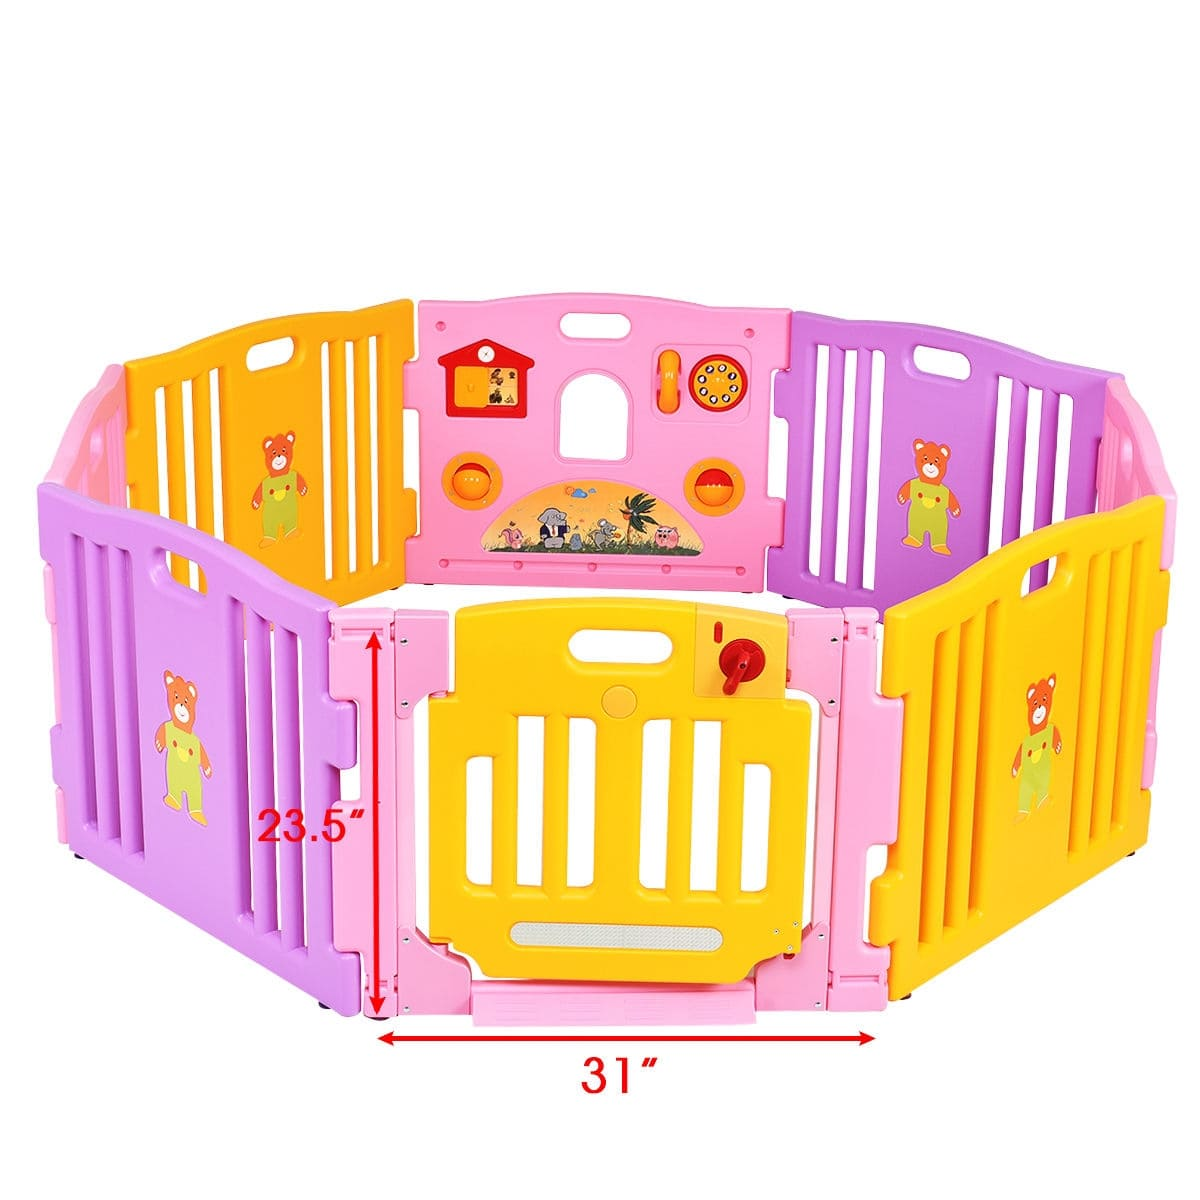 Pink 8 Panel Baby Playpen Kids Safety Play Center - FREE SHIPPING